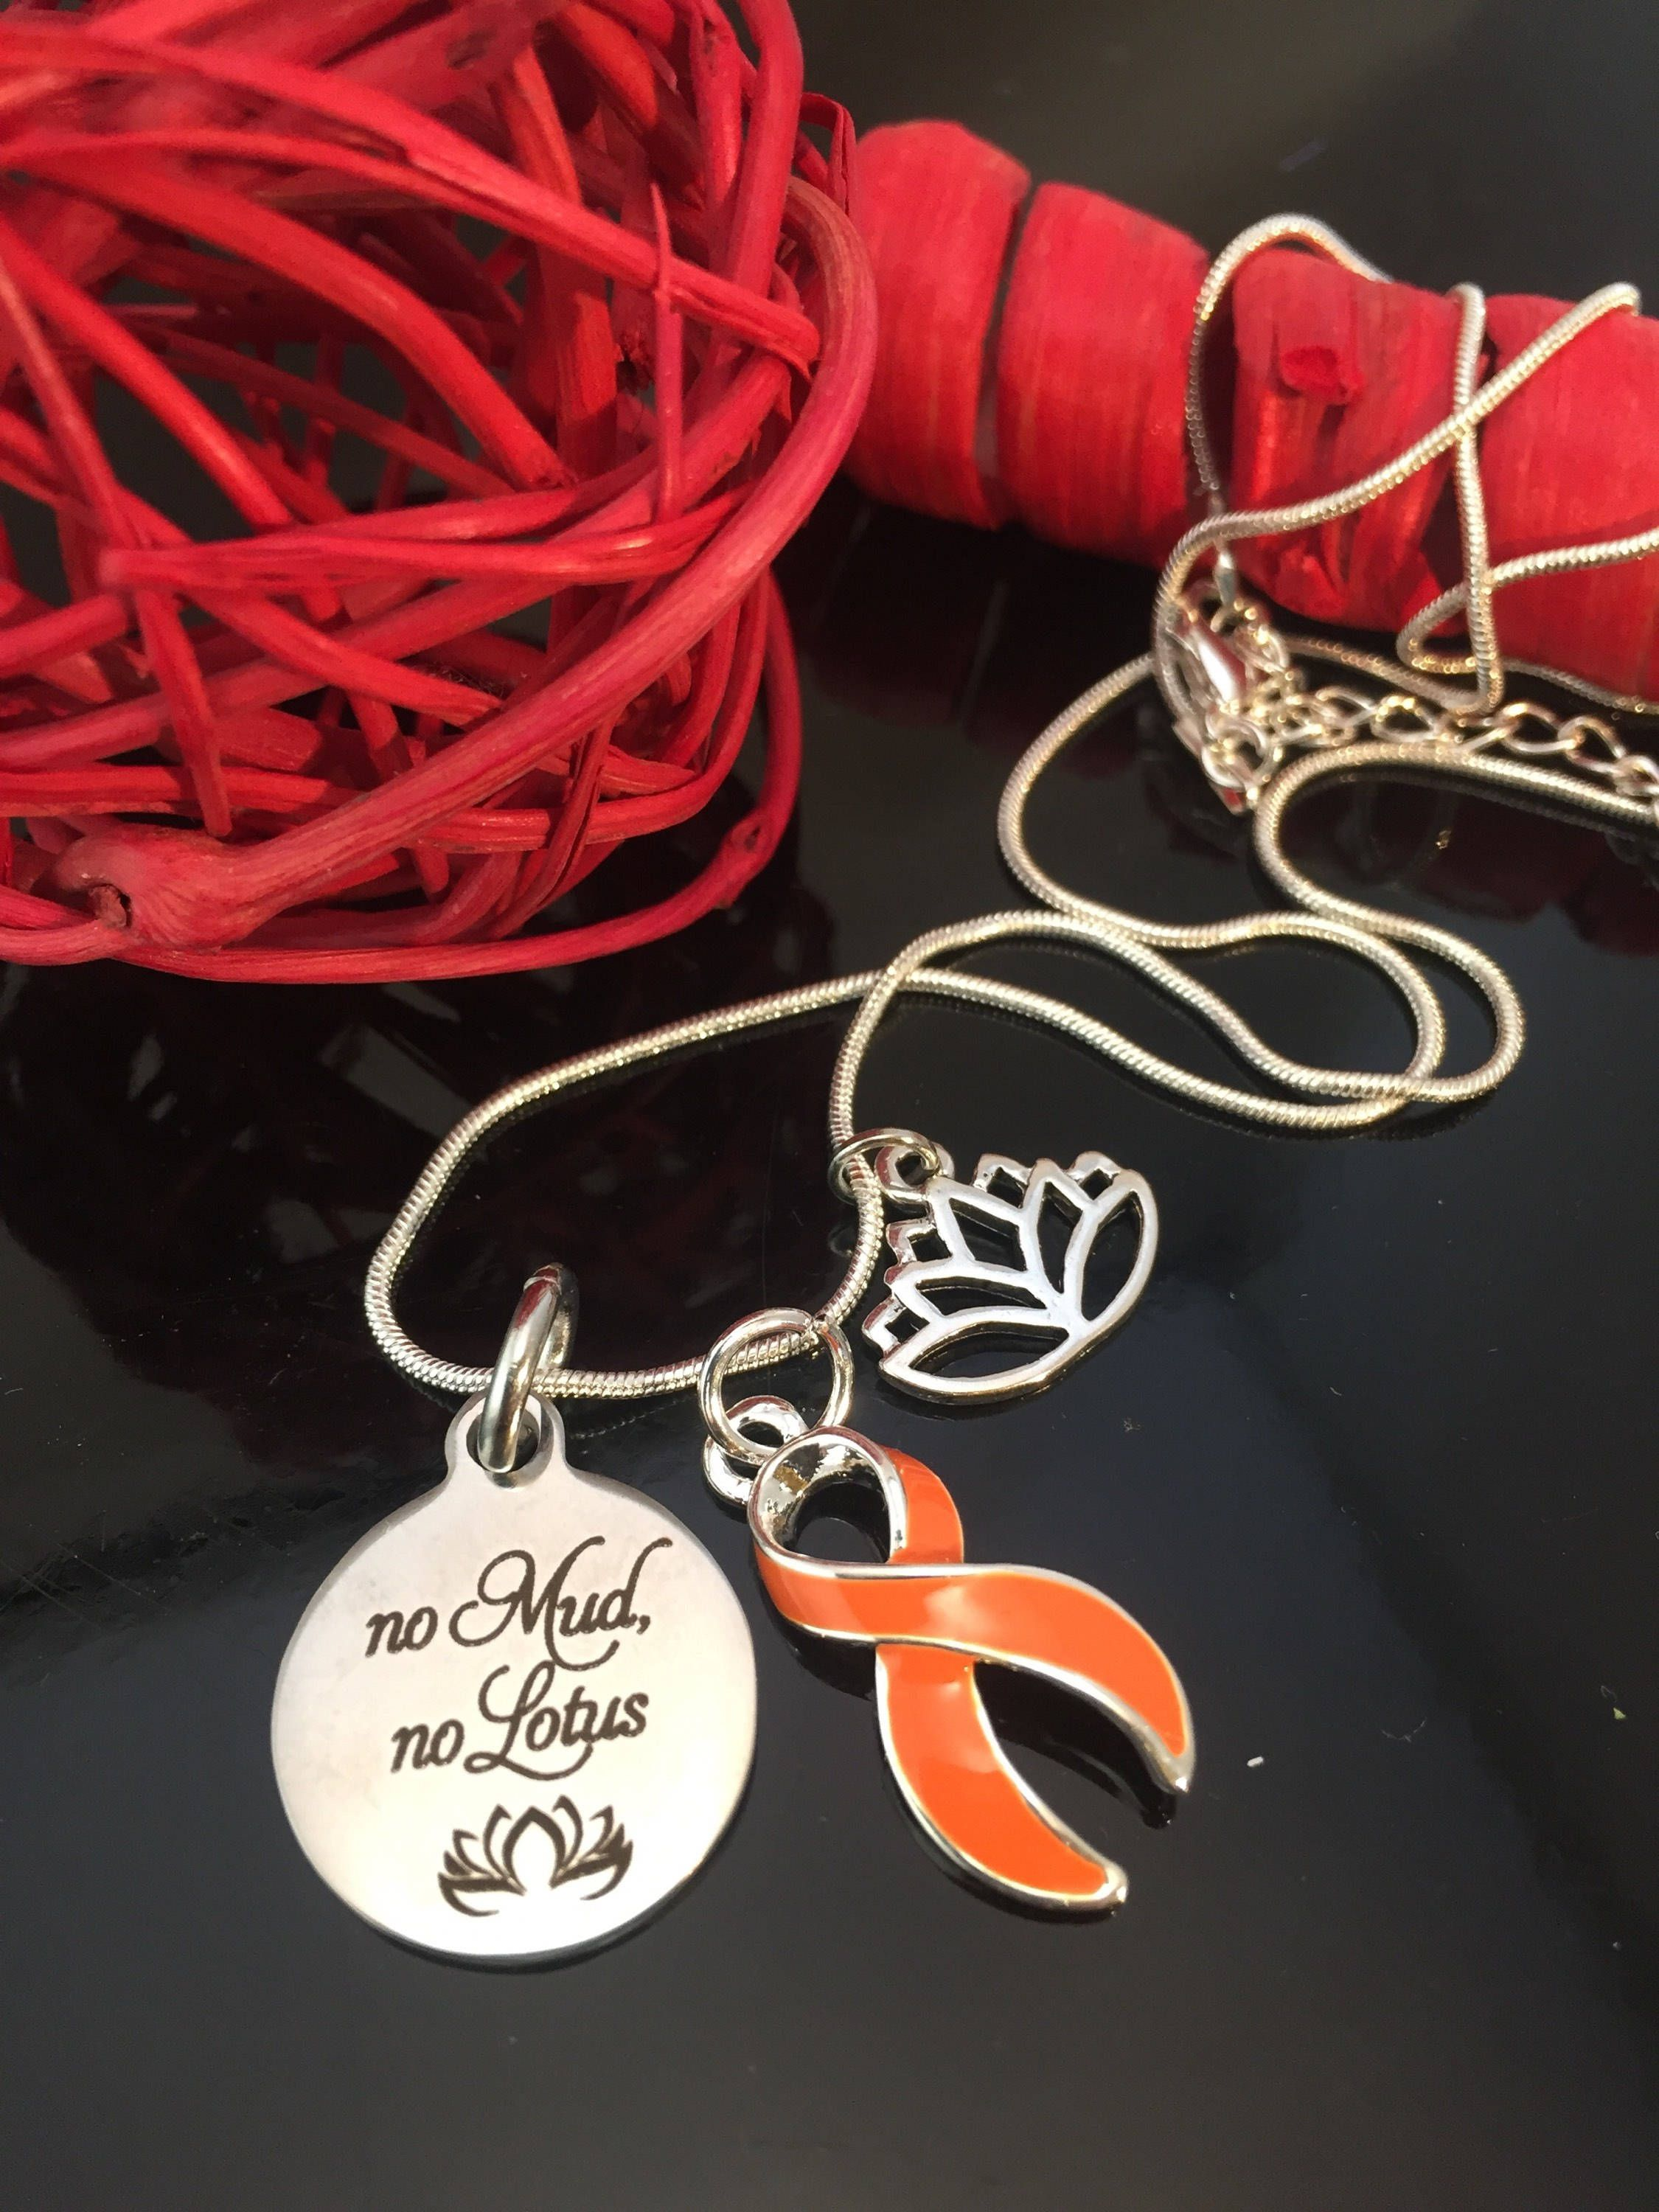 lotus orange necklace leukemia pin cancer bracelet charm no multiple mud awareness ribbon kidney